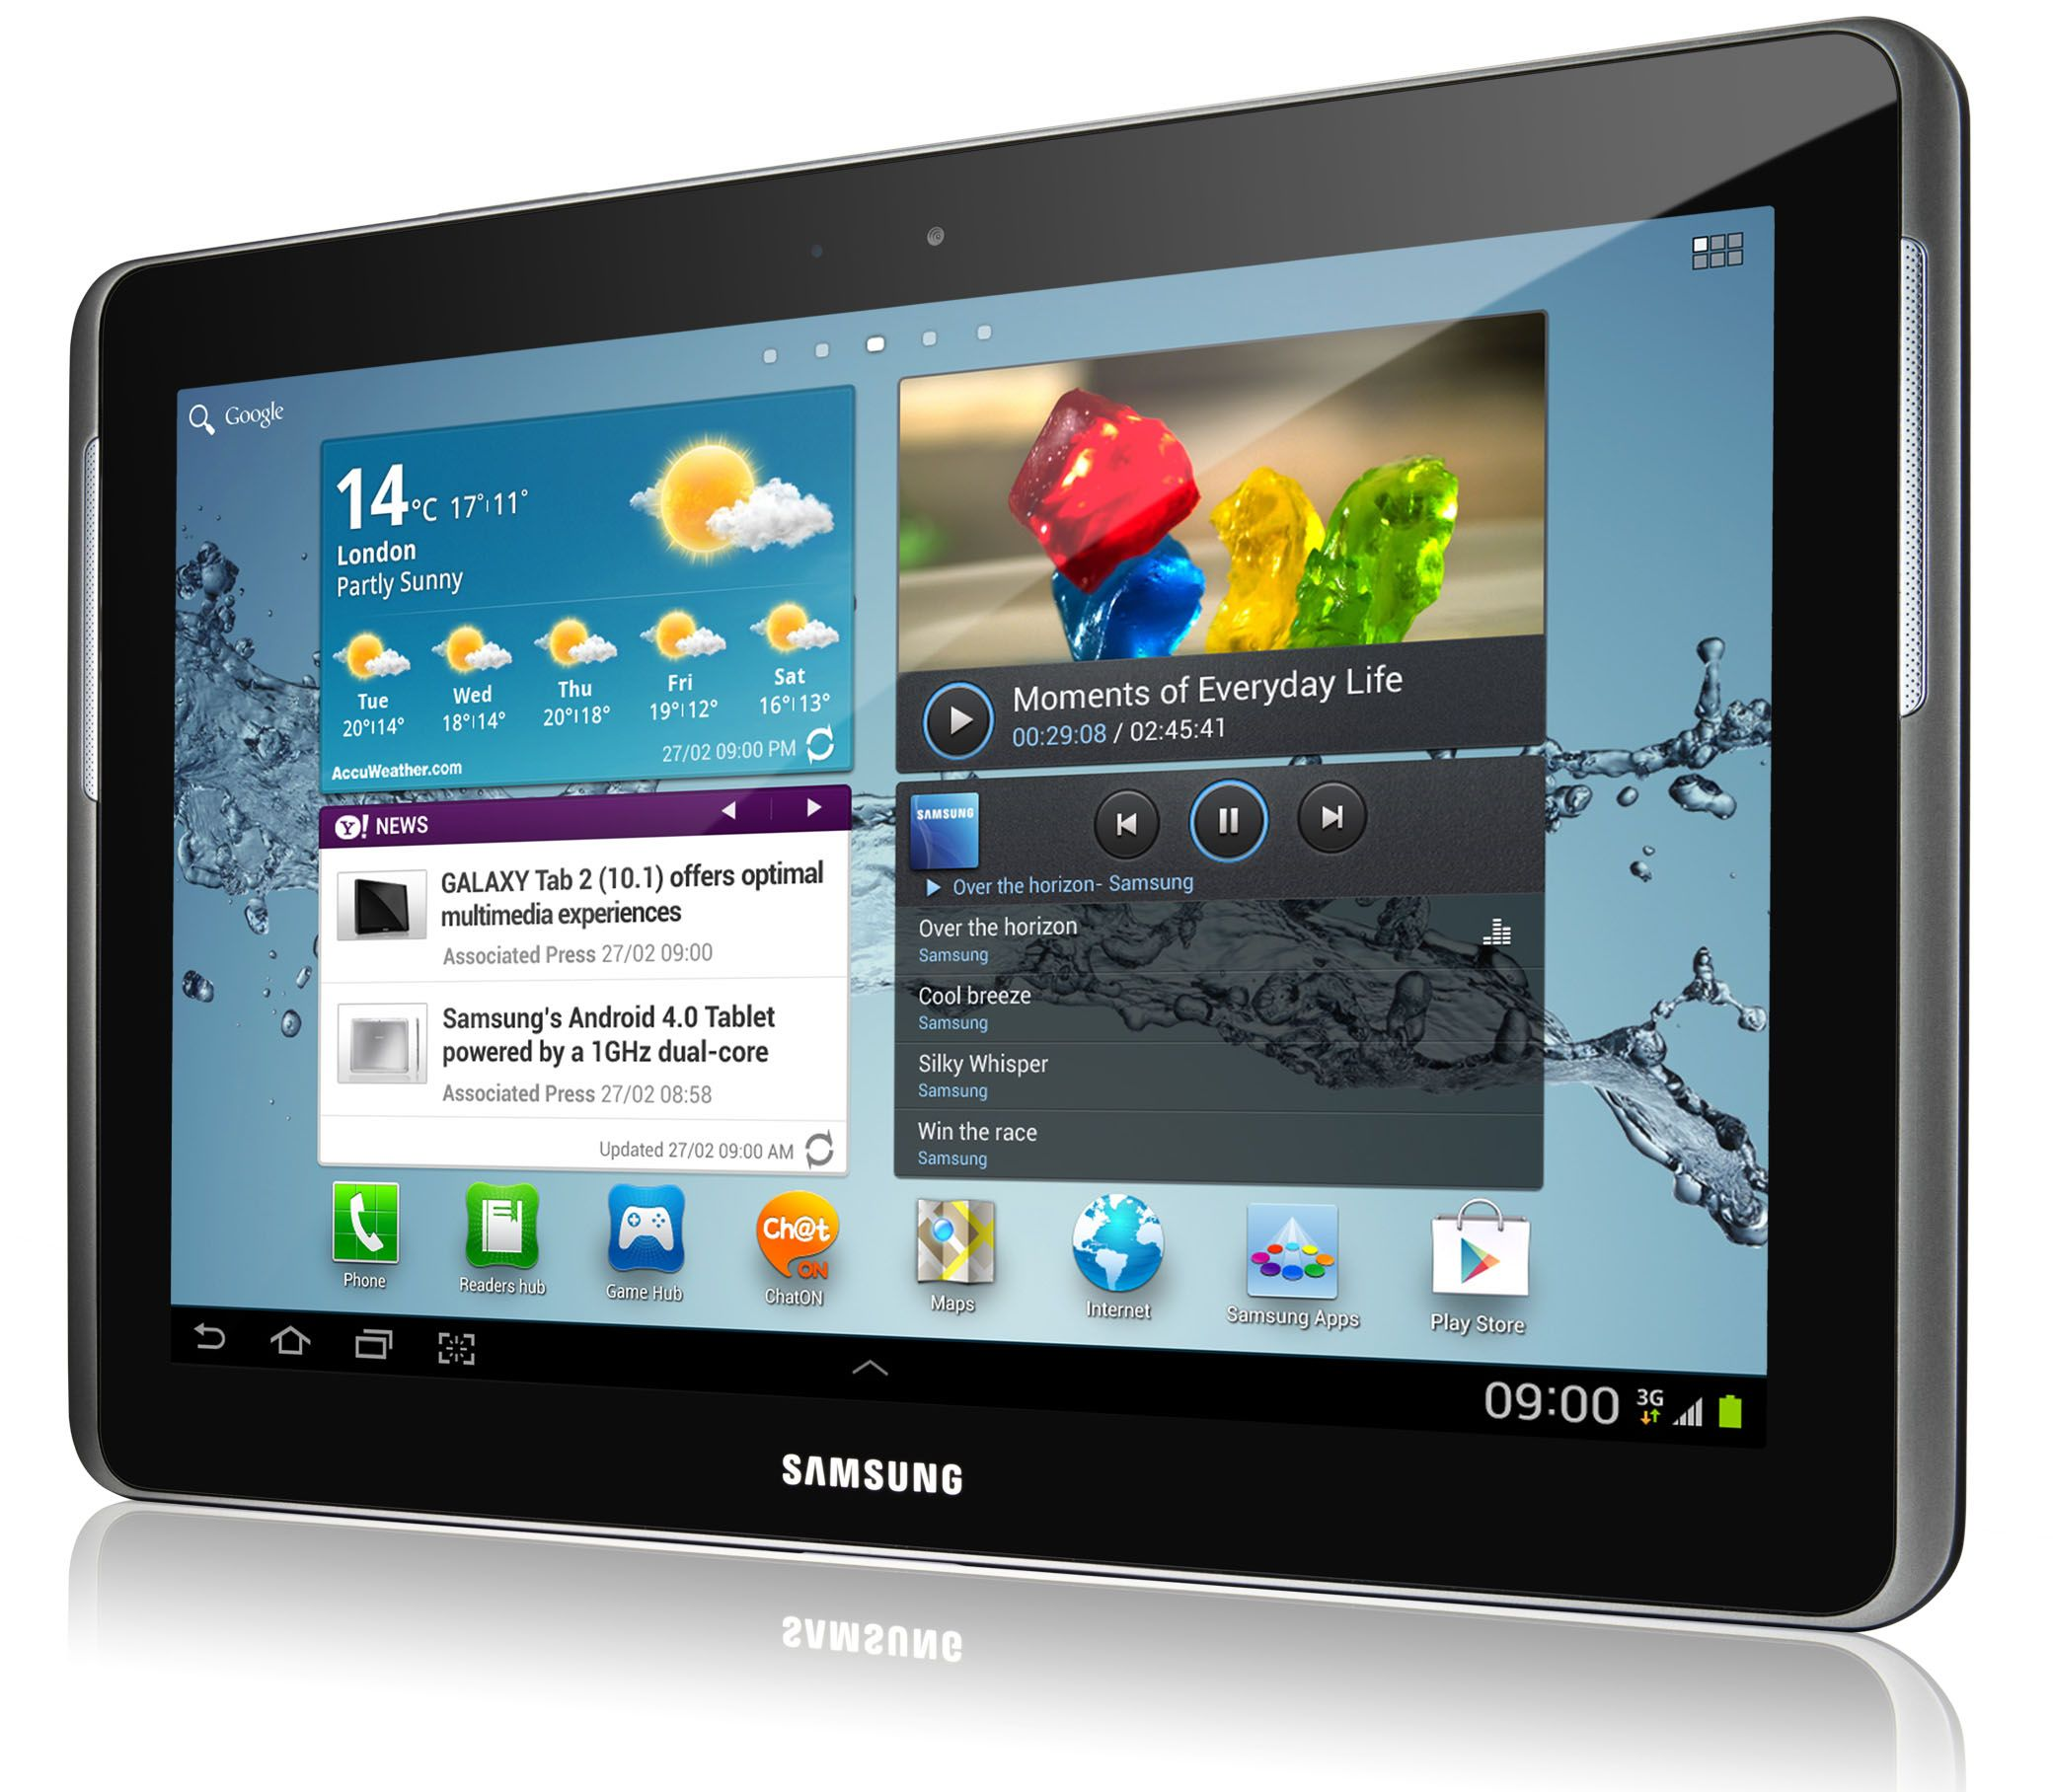 How To Root Samsung Galaxy Tab 2 10.1 P5100 On Android 4.2